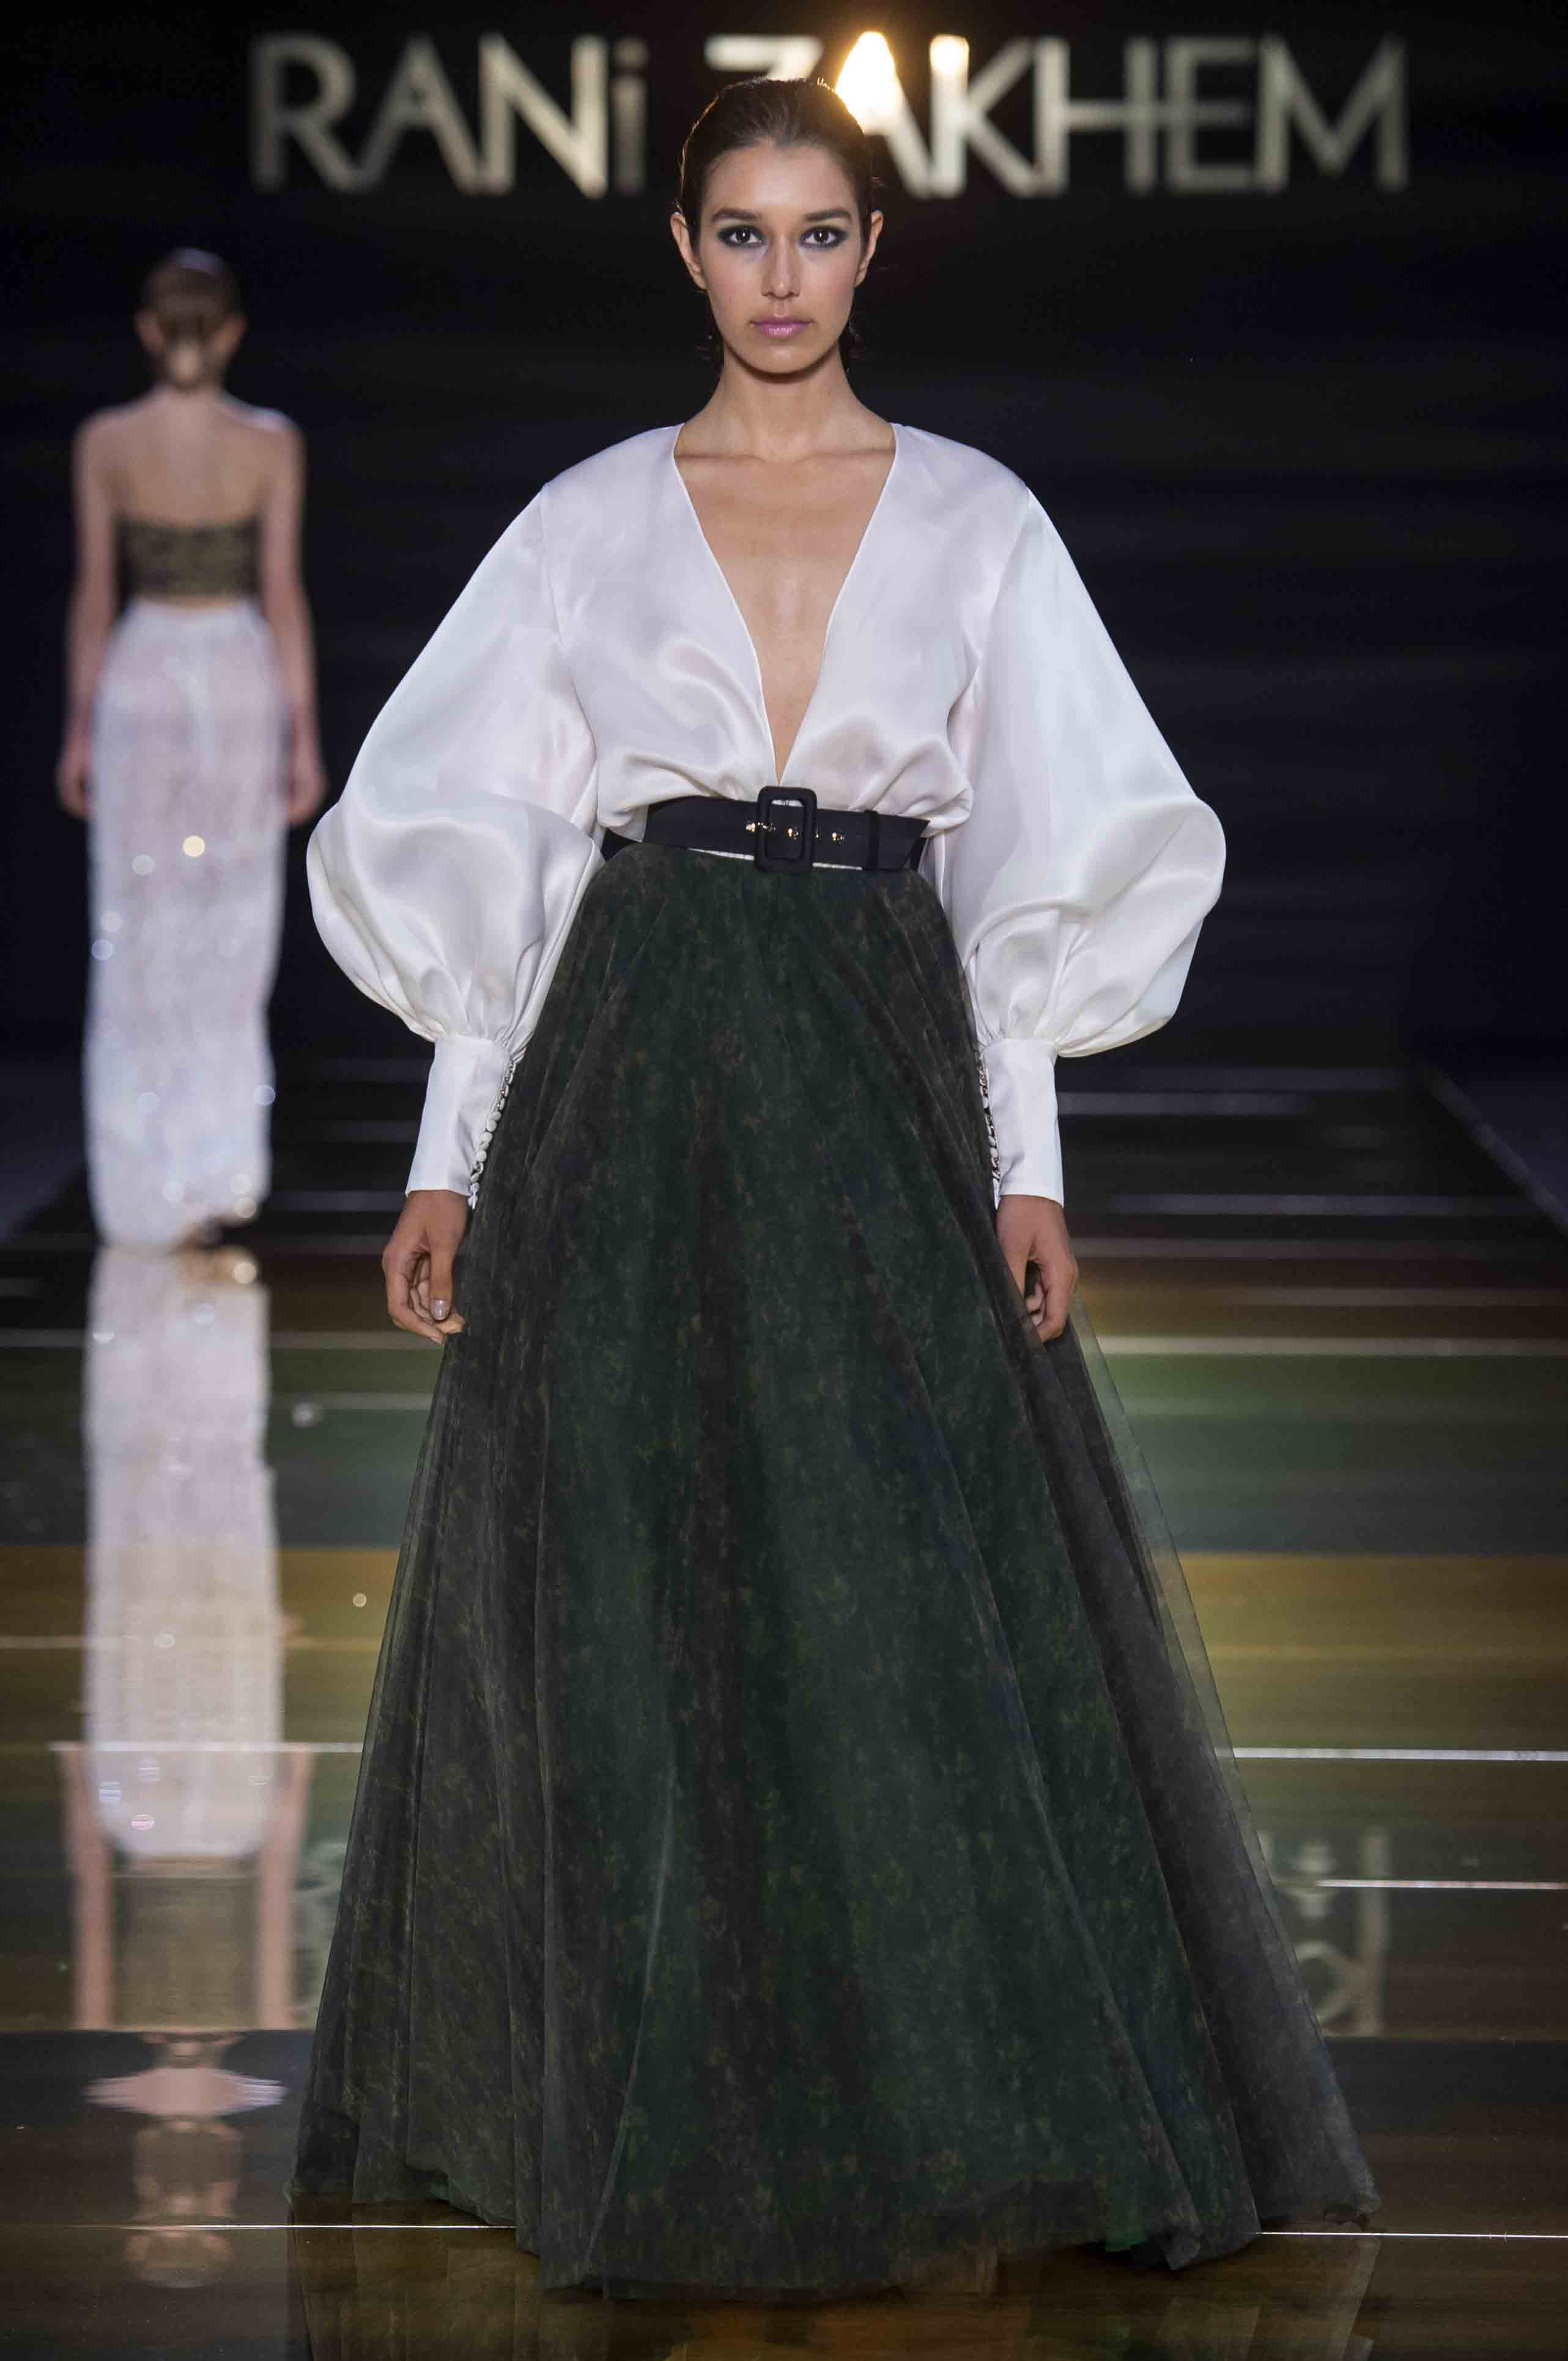 Rani zakhem couture collection automne hiver fall winter 2018 2019 pfw © imaxtree (12)